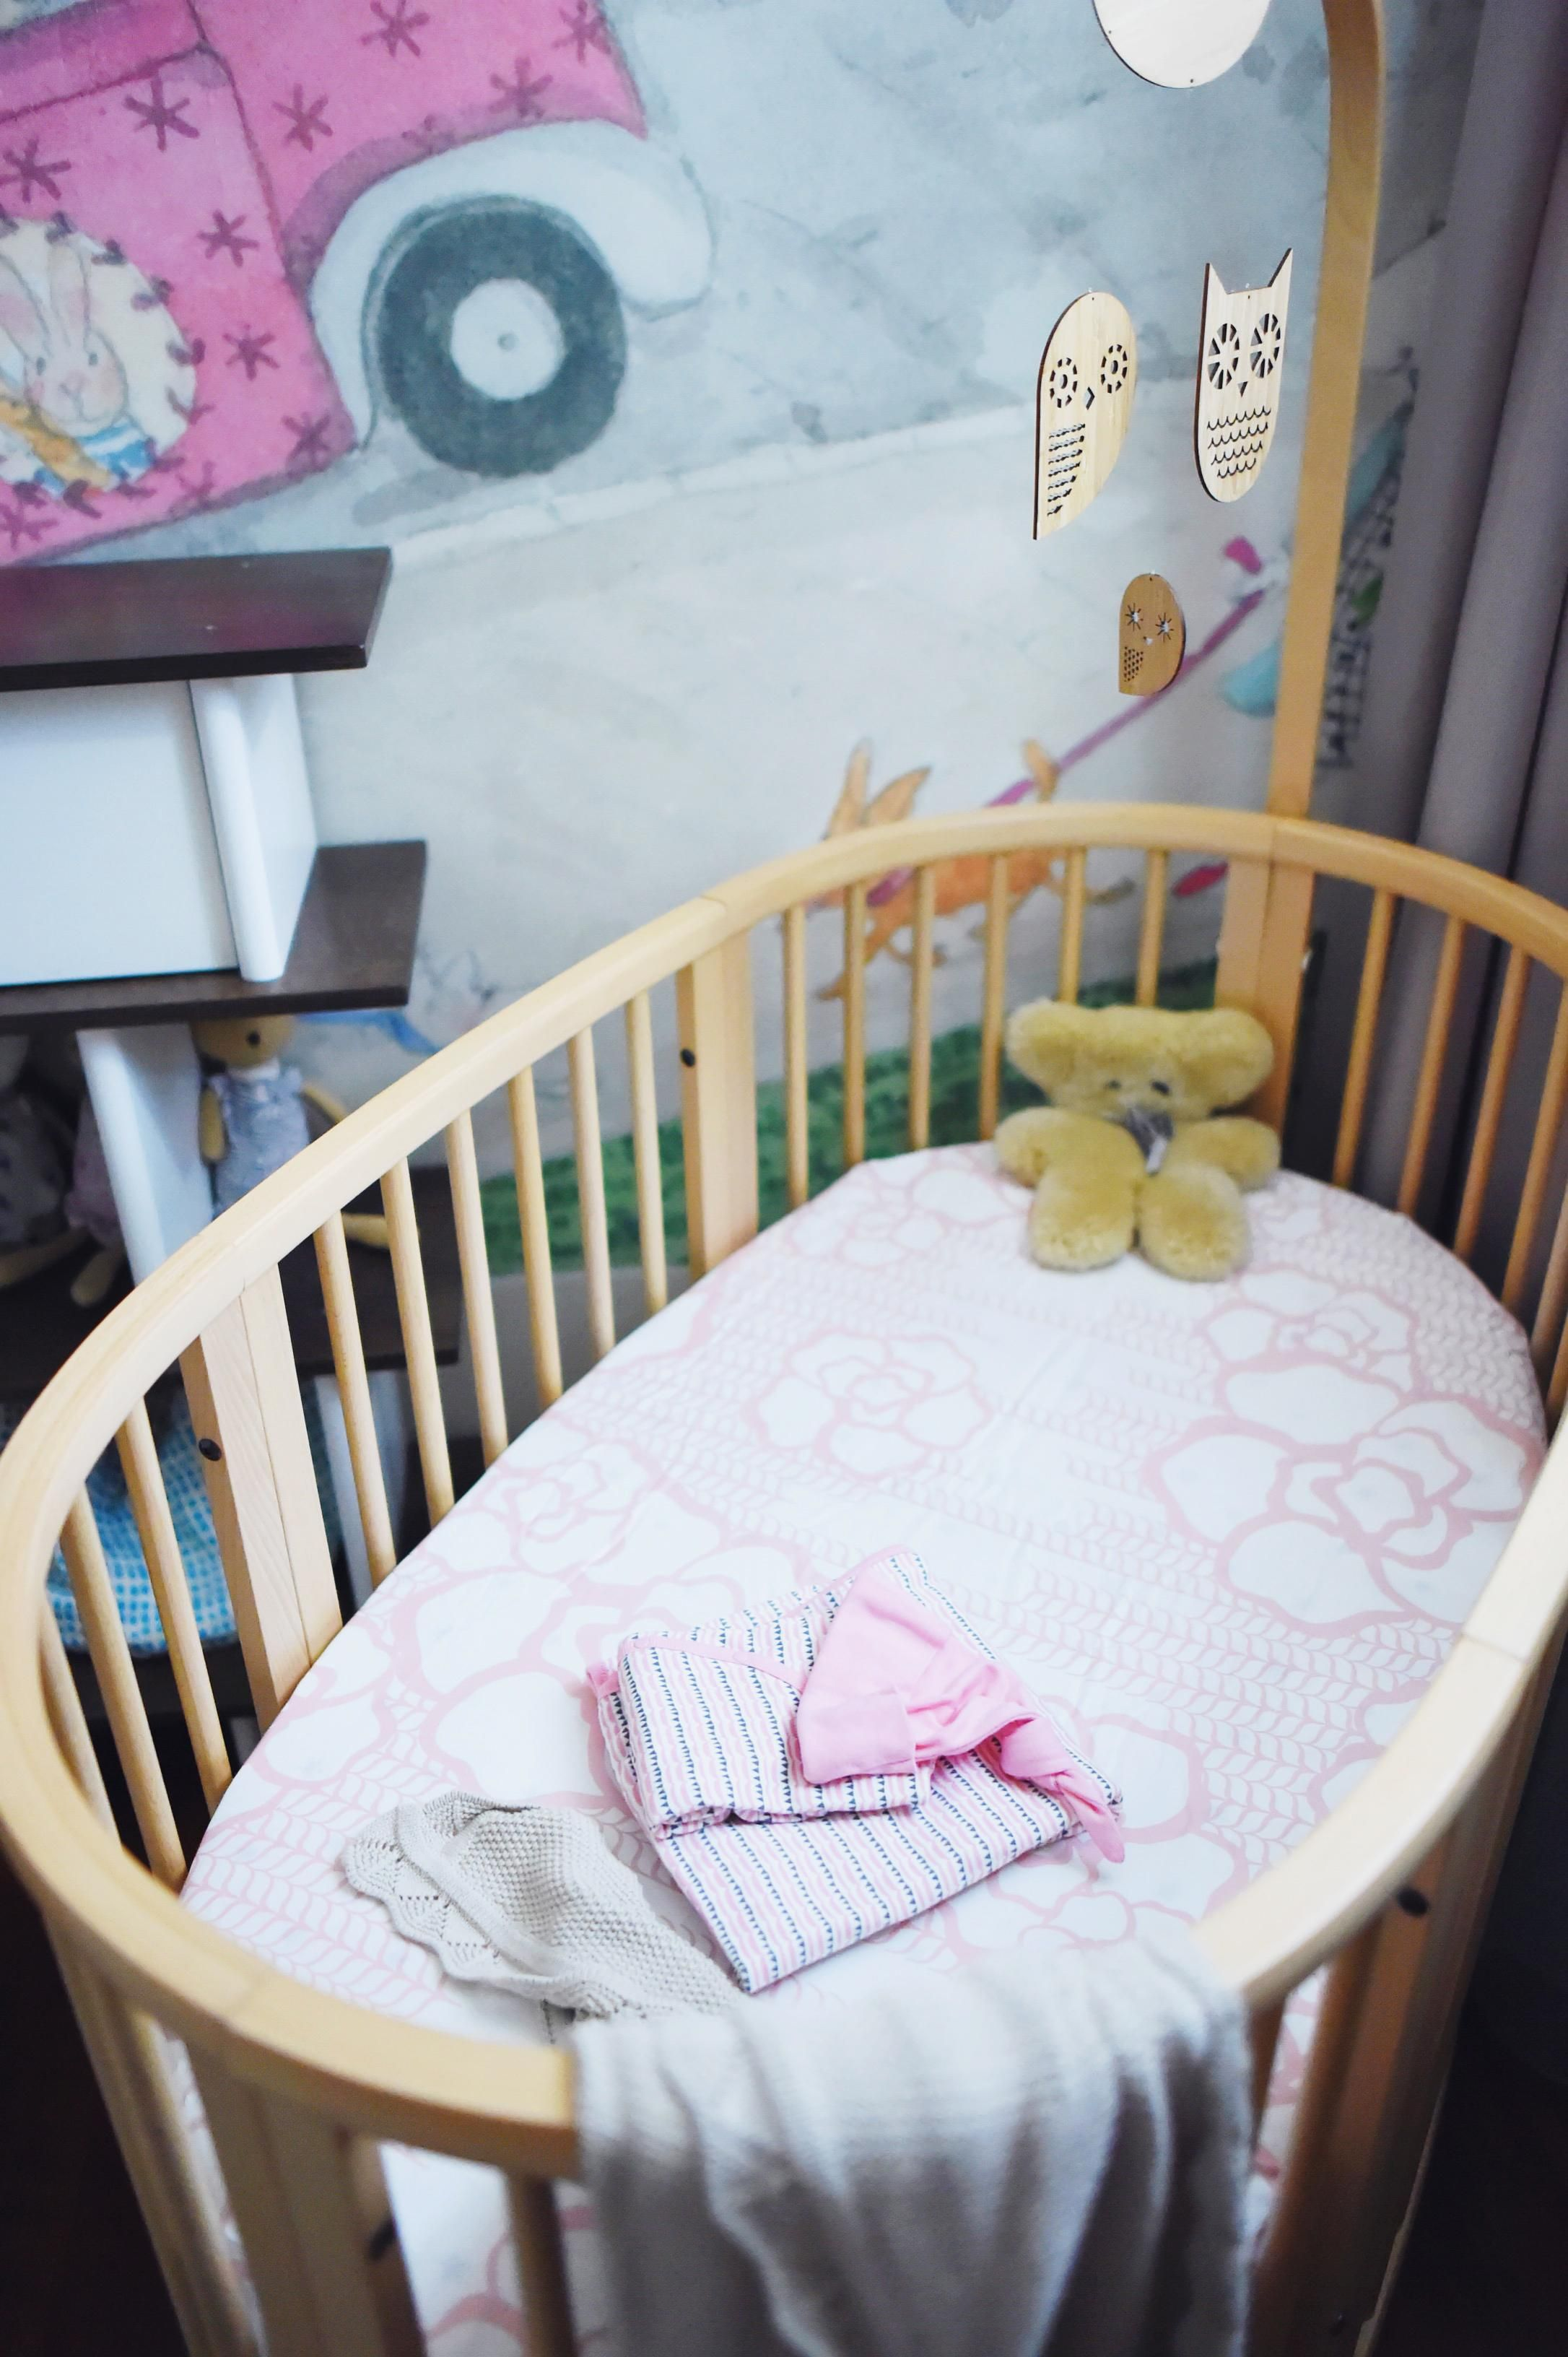 Crib heights for babies - Stokke Sleepi Crib Has A Height Adjustable Mattress And Converts Into Toddler Bed